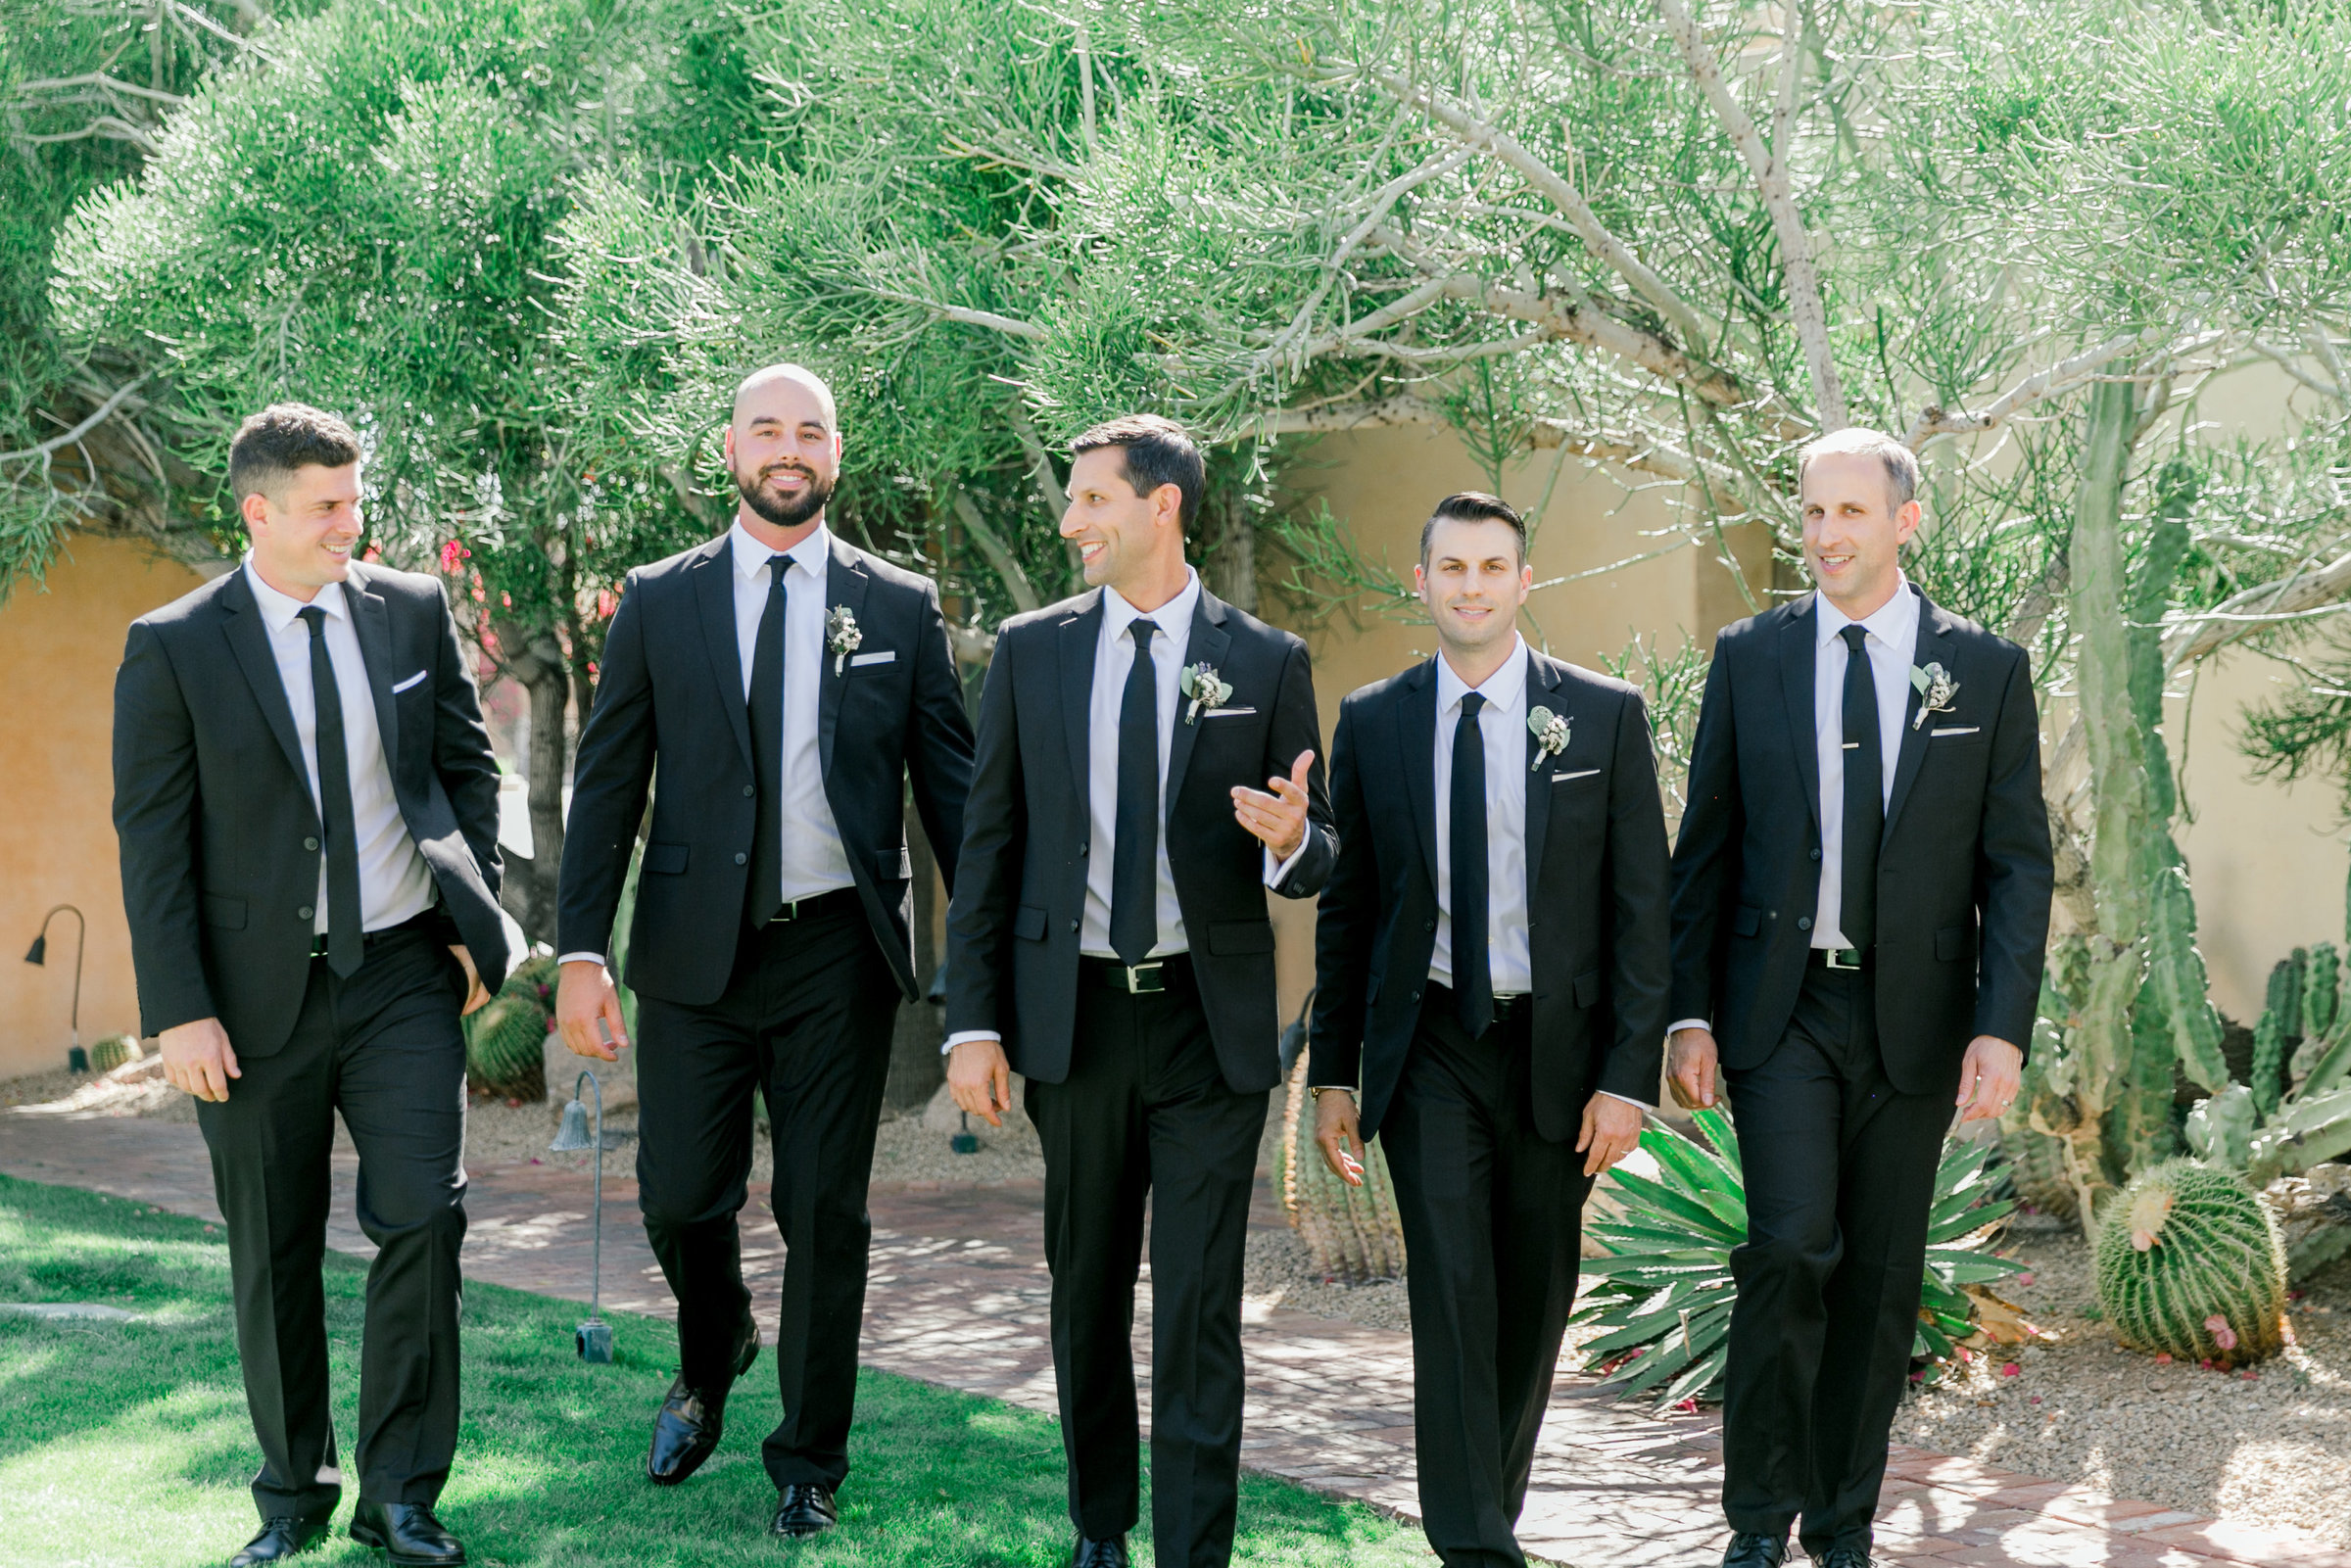 Karlie Colleen Photography - Arizona Wedding - Royal Palms Resort- Alex & Alex-79